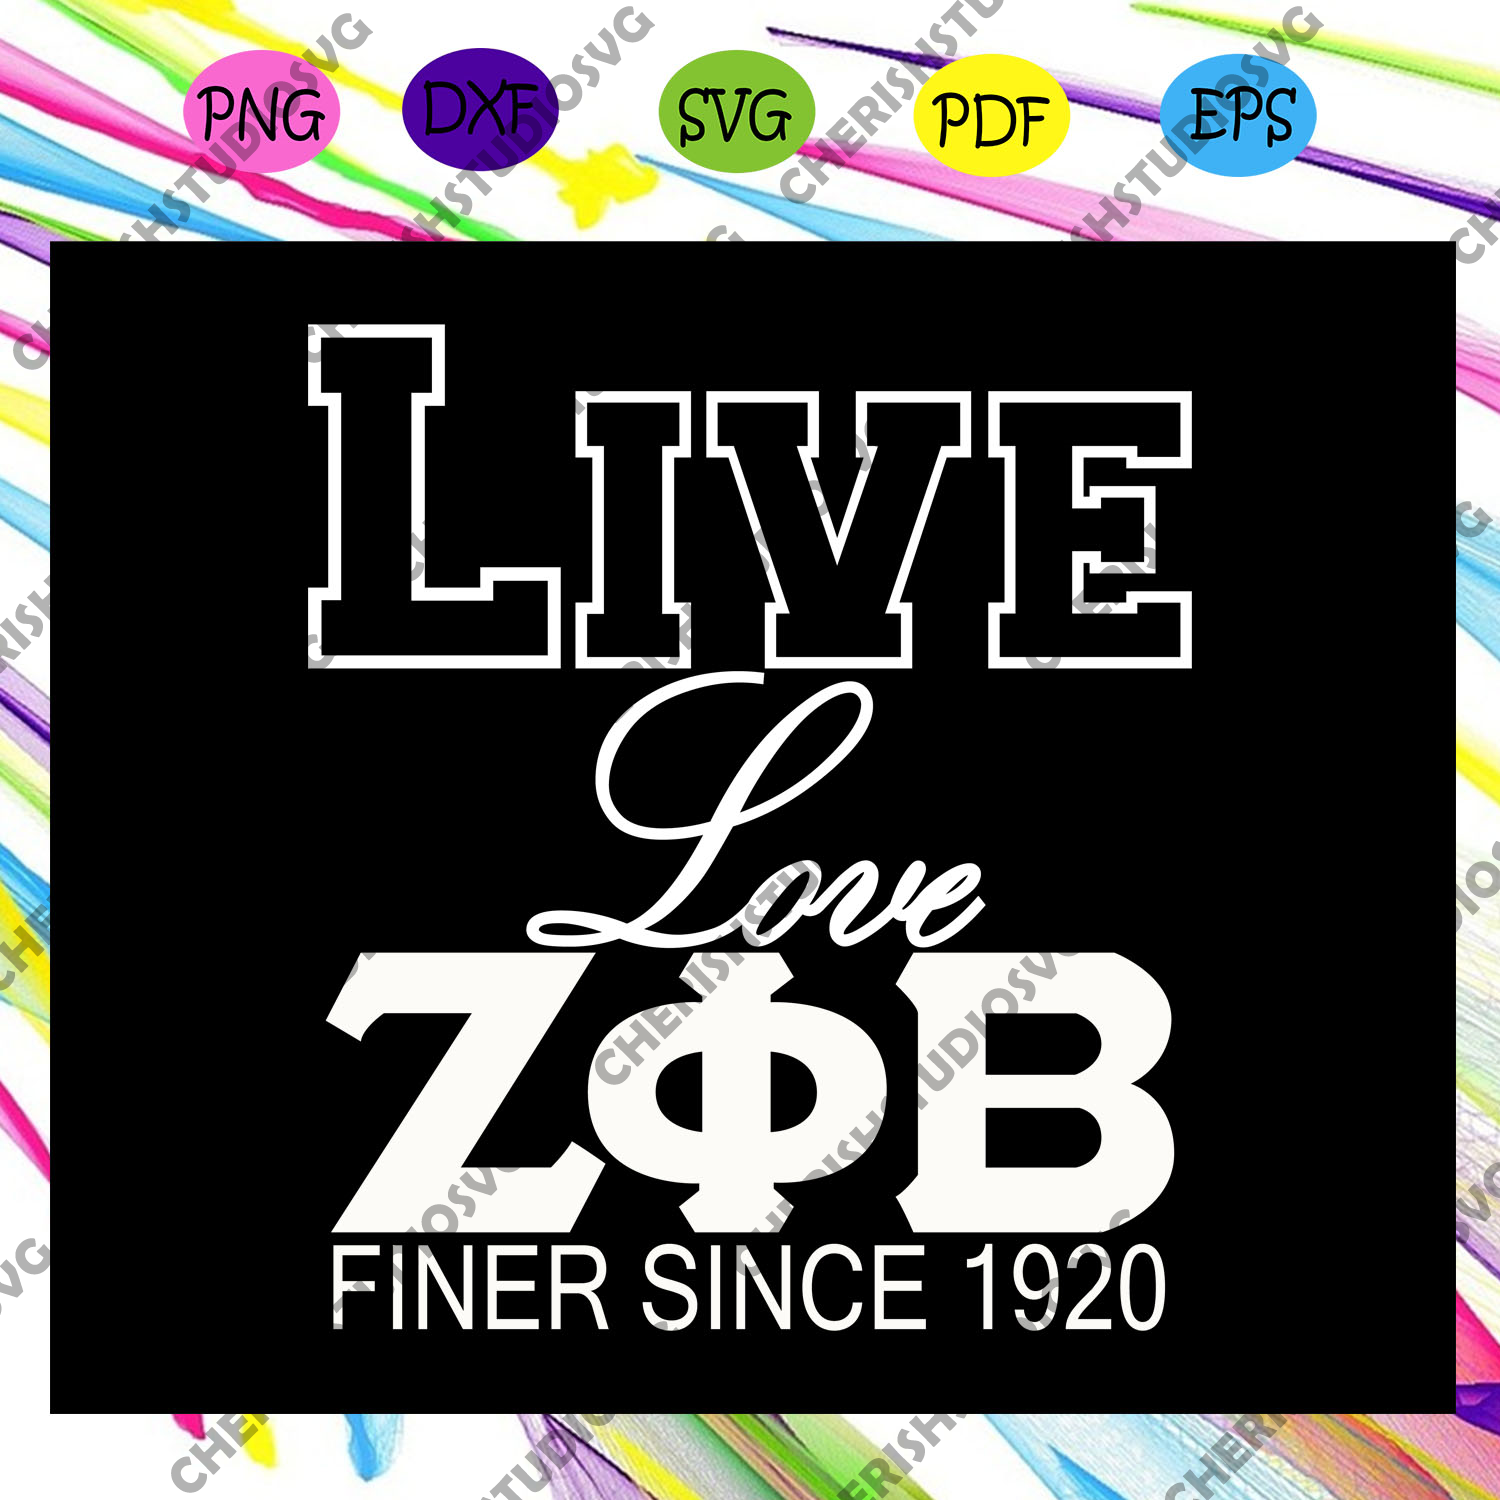 Live love finer since 1920, Zeta svg, 1920 zeta phi beta, Zeta Phi beta svg, Z phi B, zeta shirt, zeta sorority, sorority svg, sorority gift, Files For Silhouette, Files For Cricut, SVG, DXF, EPS, PNG, Instant Download